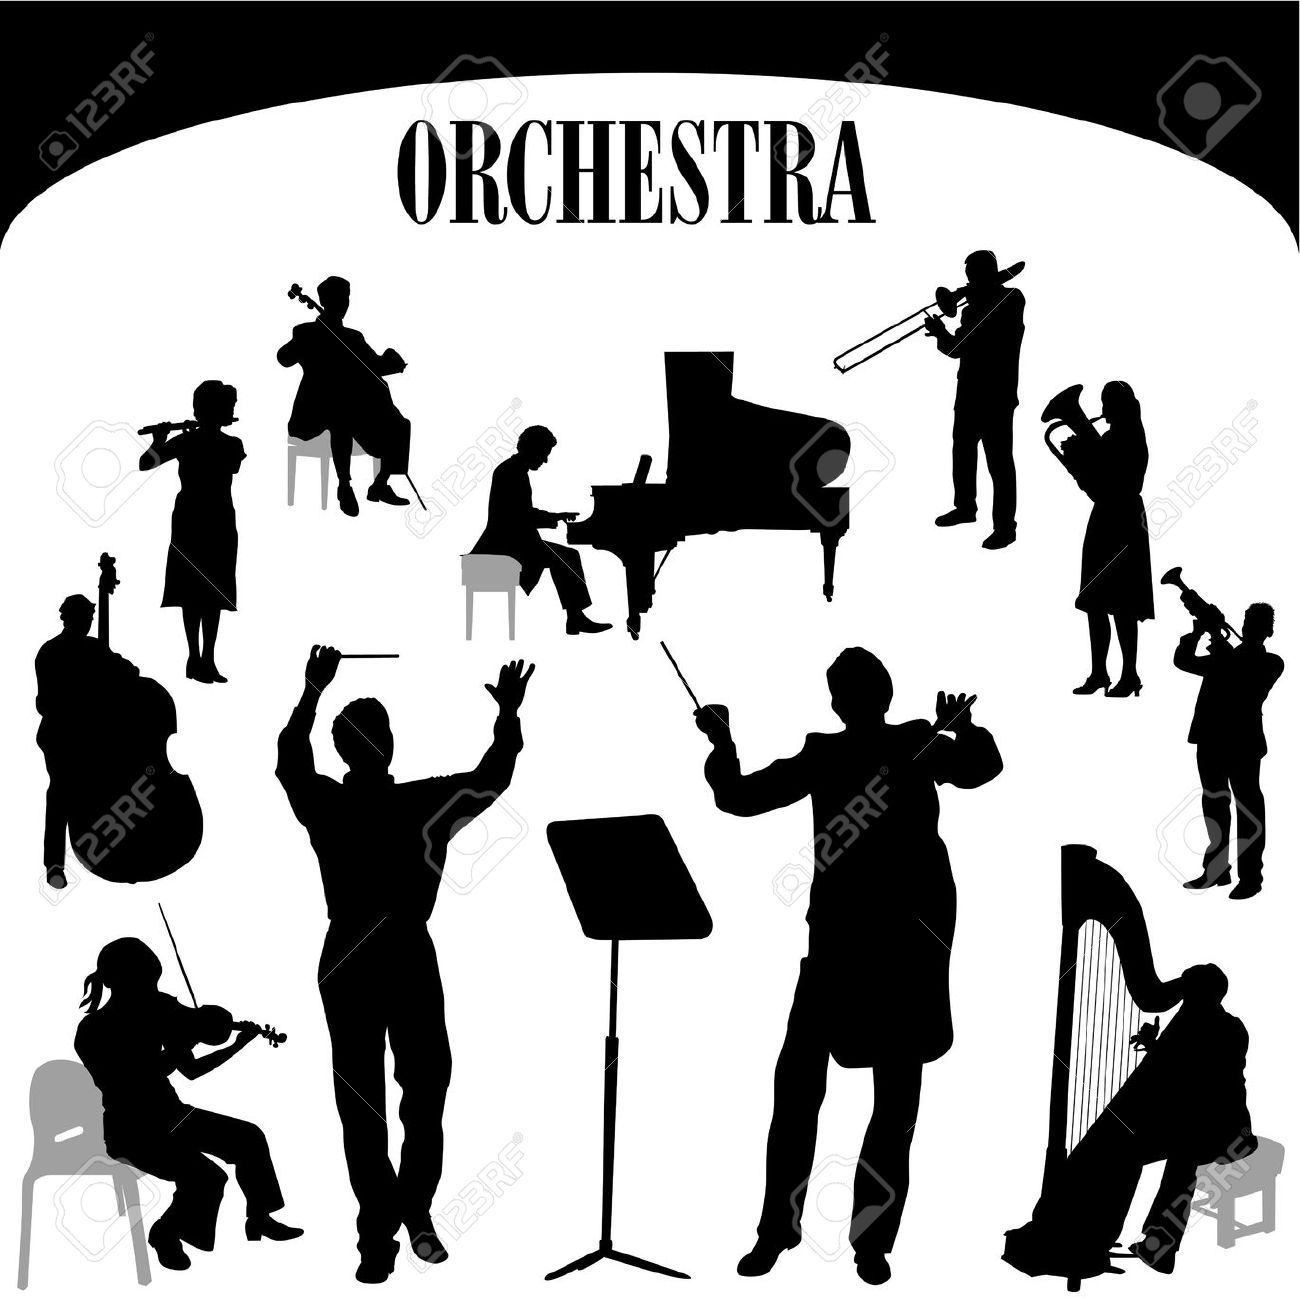 Orchestras clipart clipart free download Free Orchestra Cliparts, Download Free Clip Art, Free Clip ... clipart free download